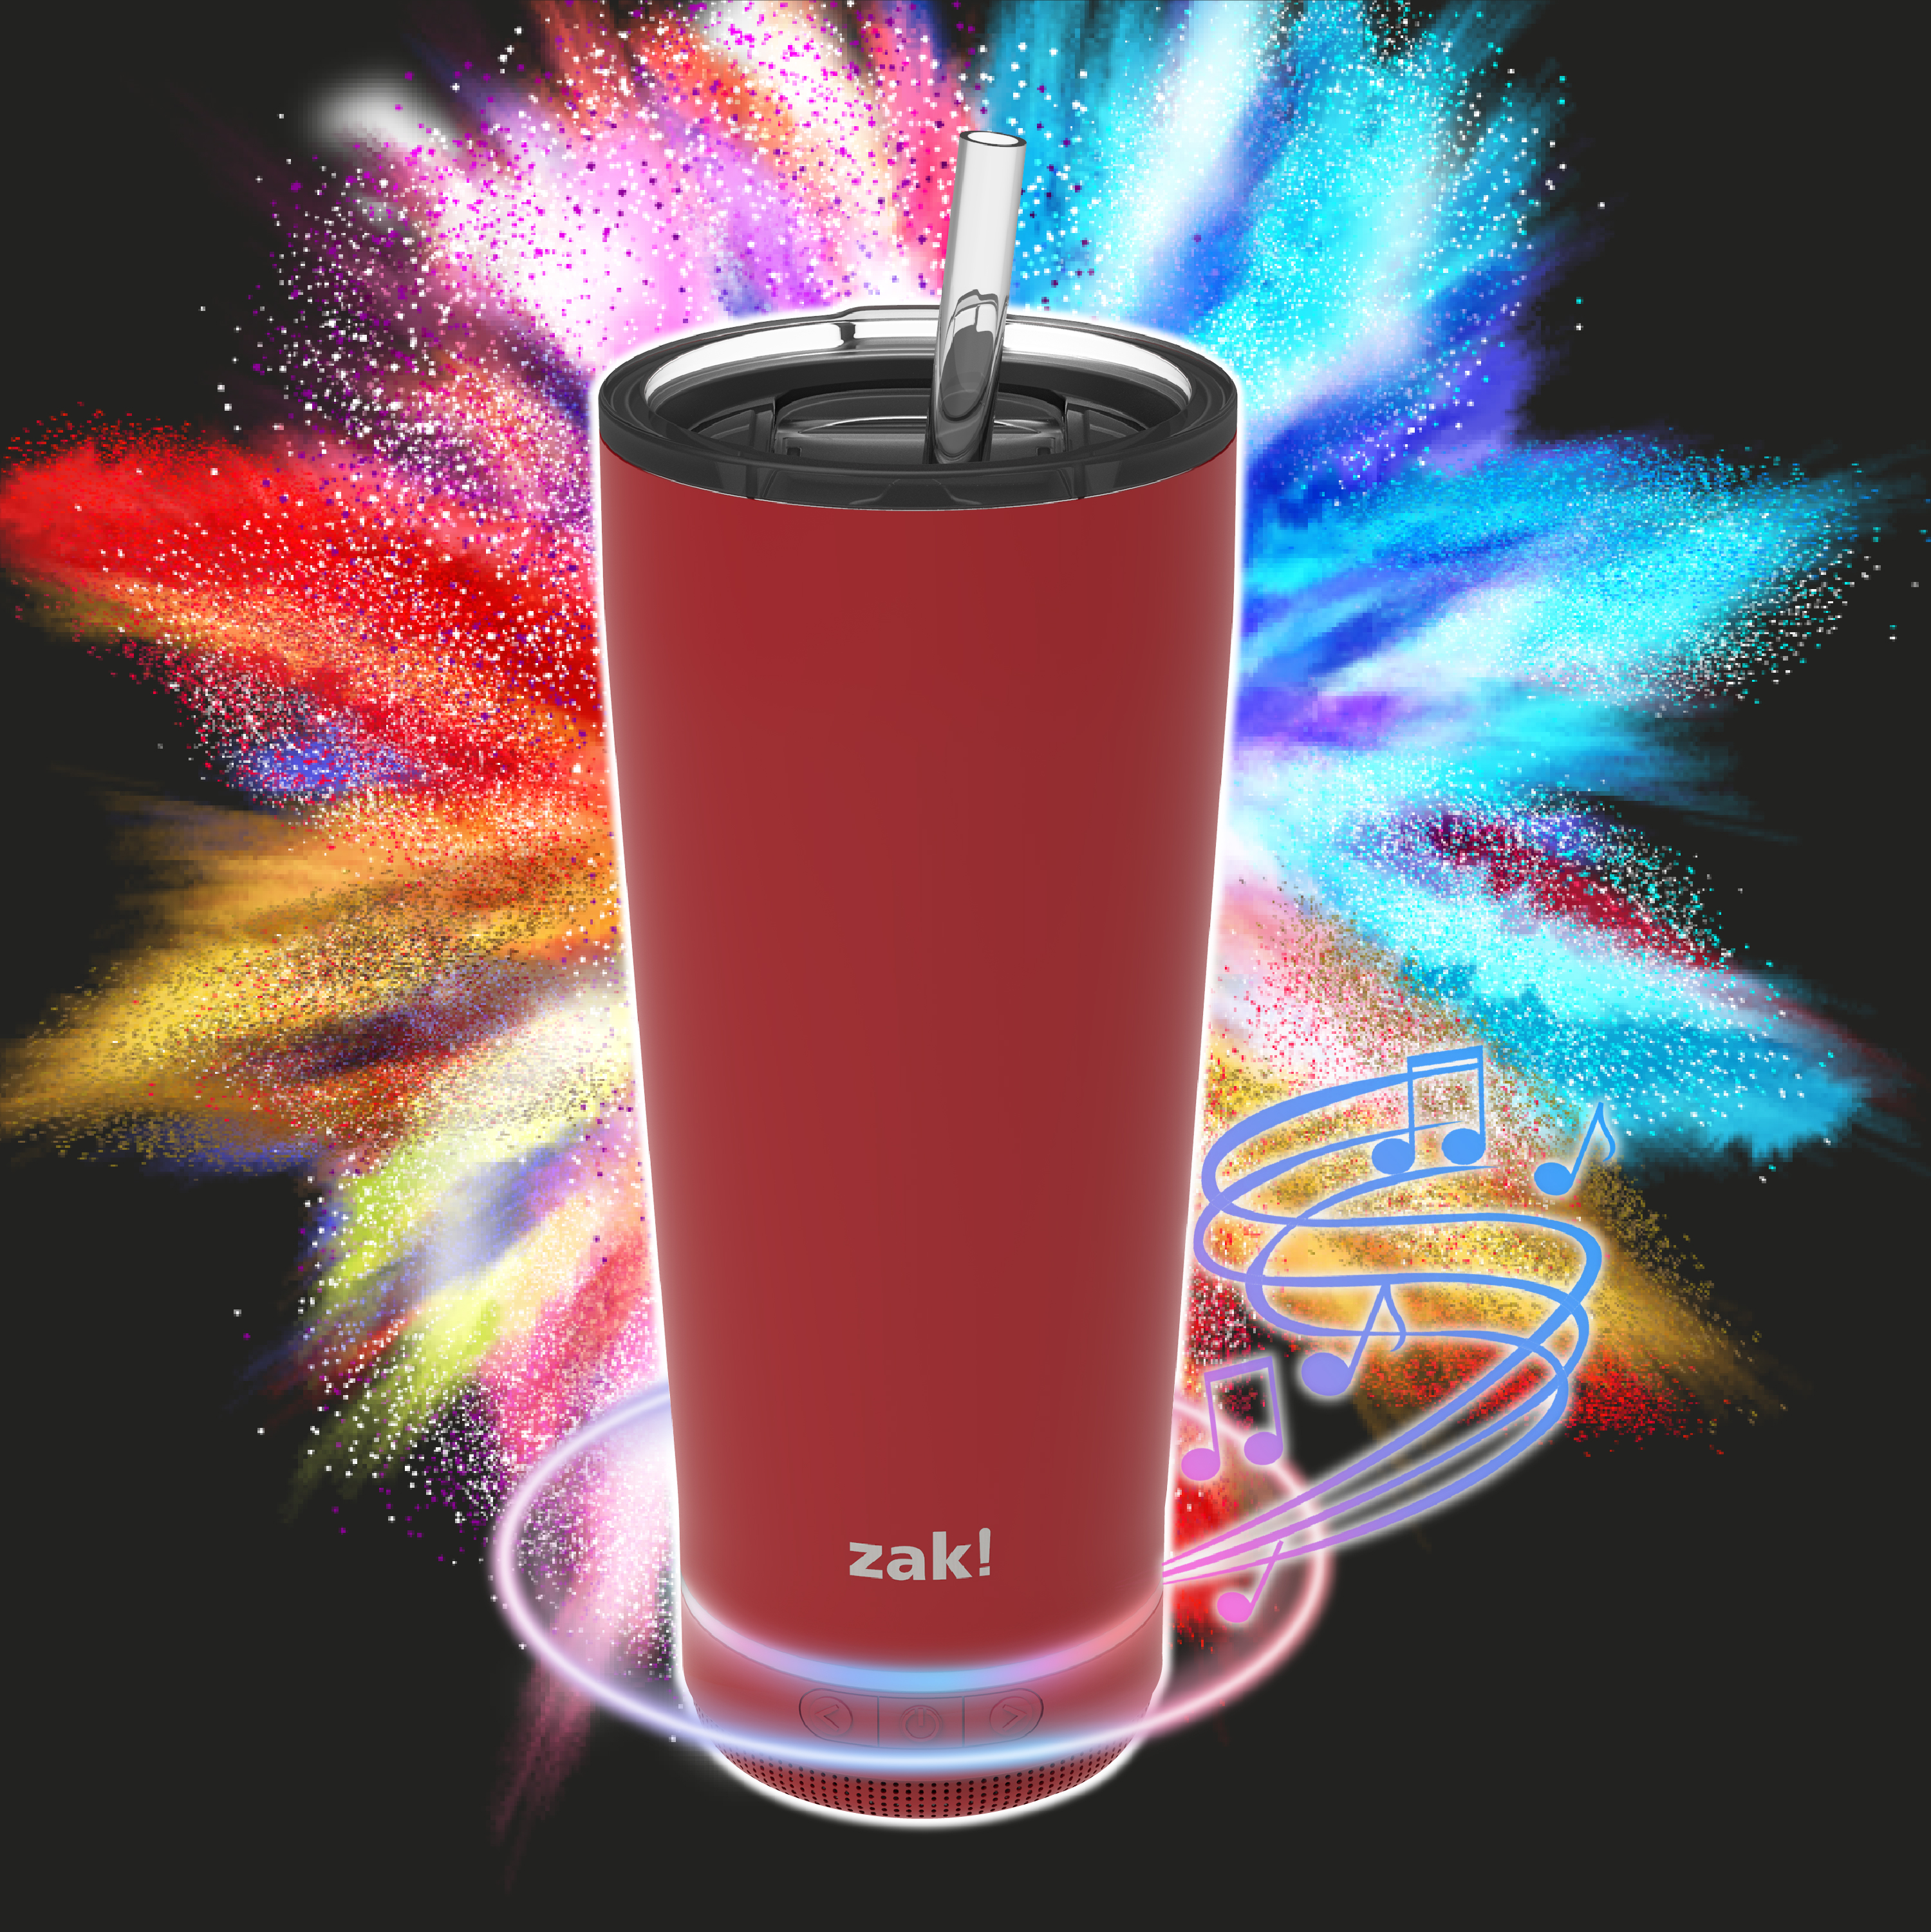 Zak Play 18 ounce Stainless Steel Tumbler with Bluetooth Speaker, Red slideshow image 12